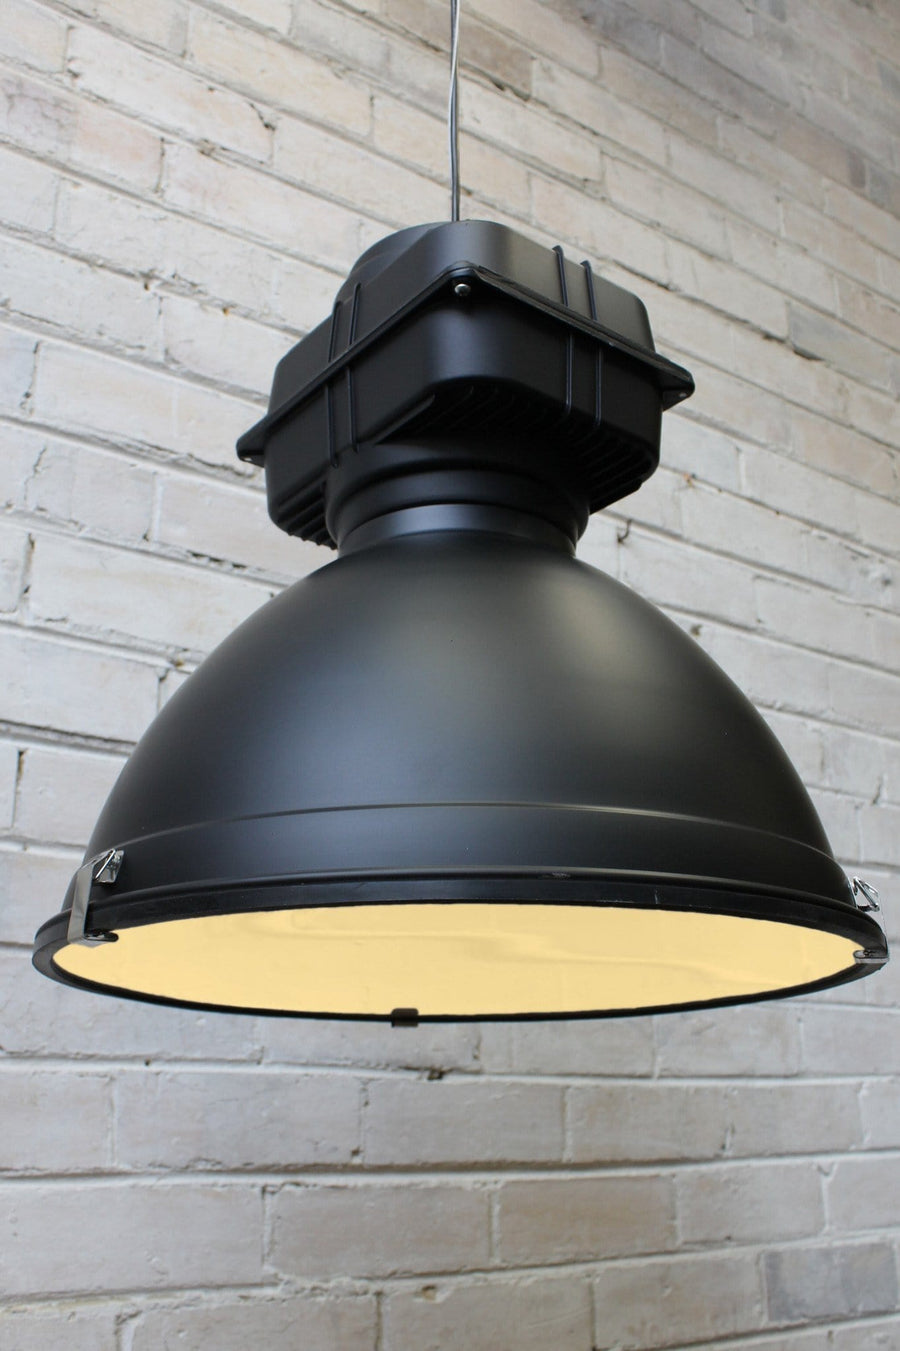 Cargo pendant light is industrial light